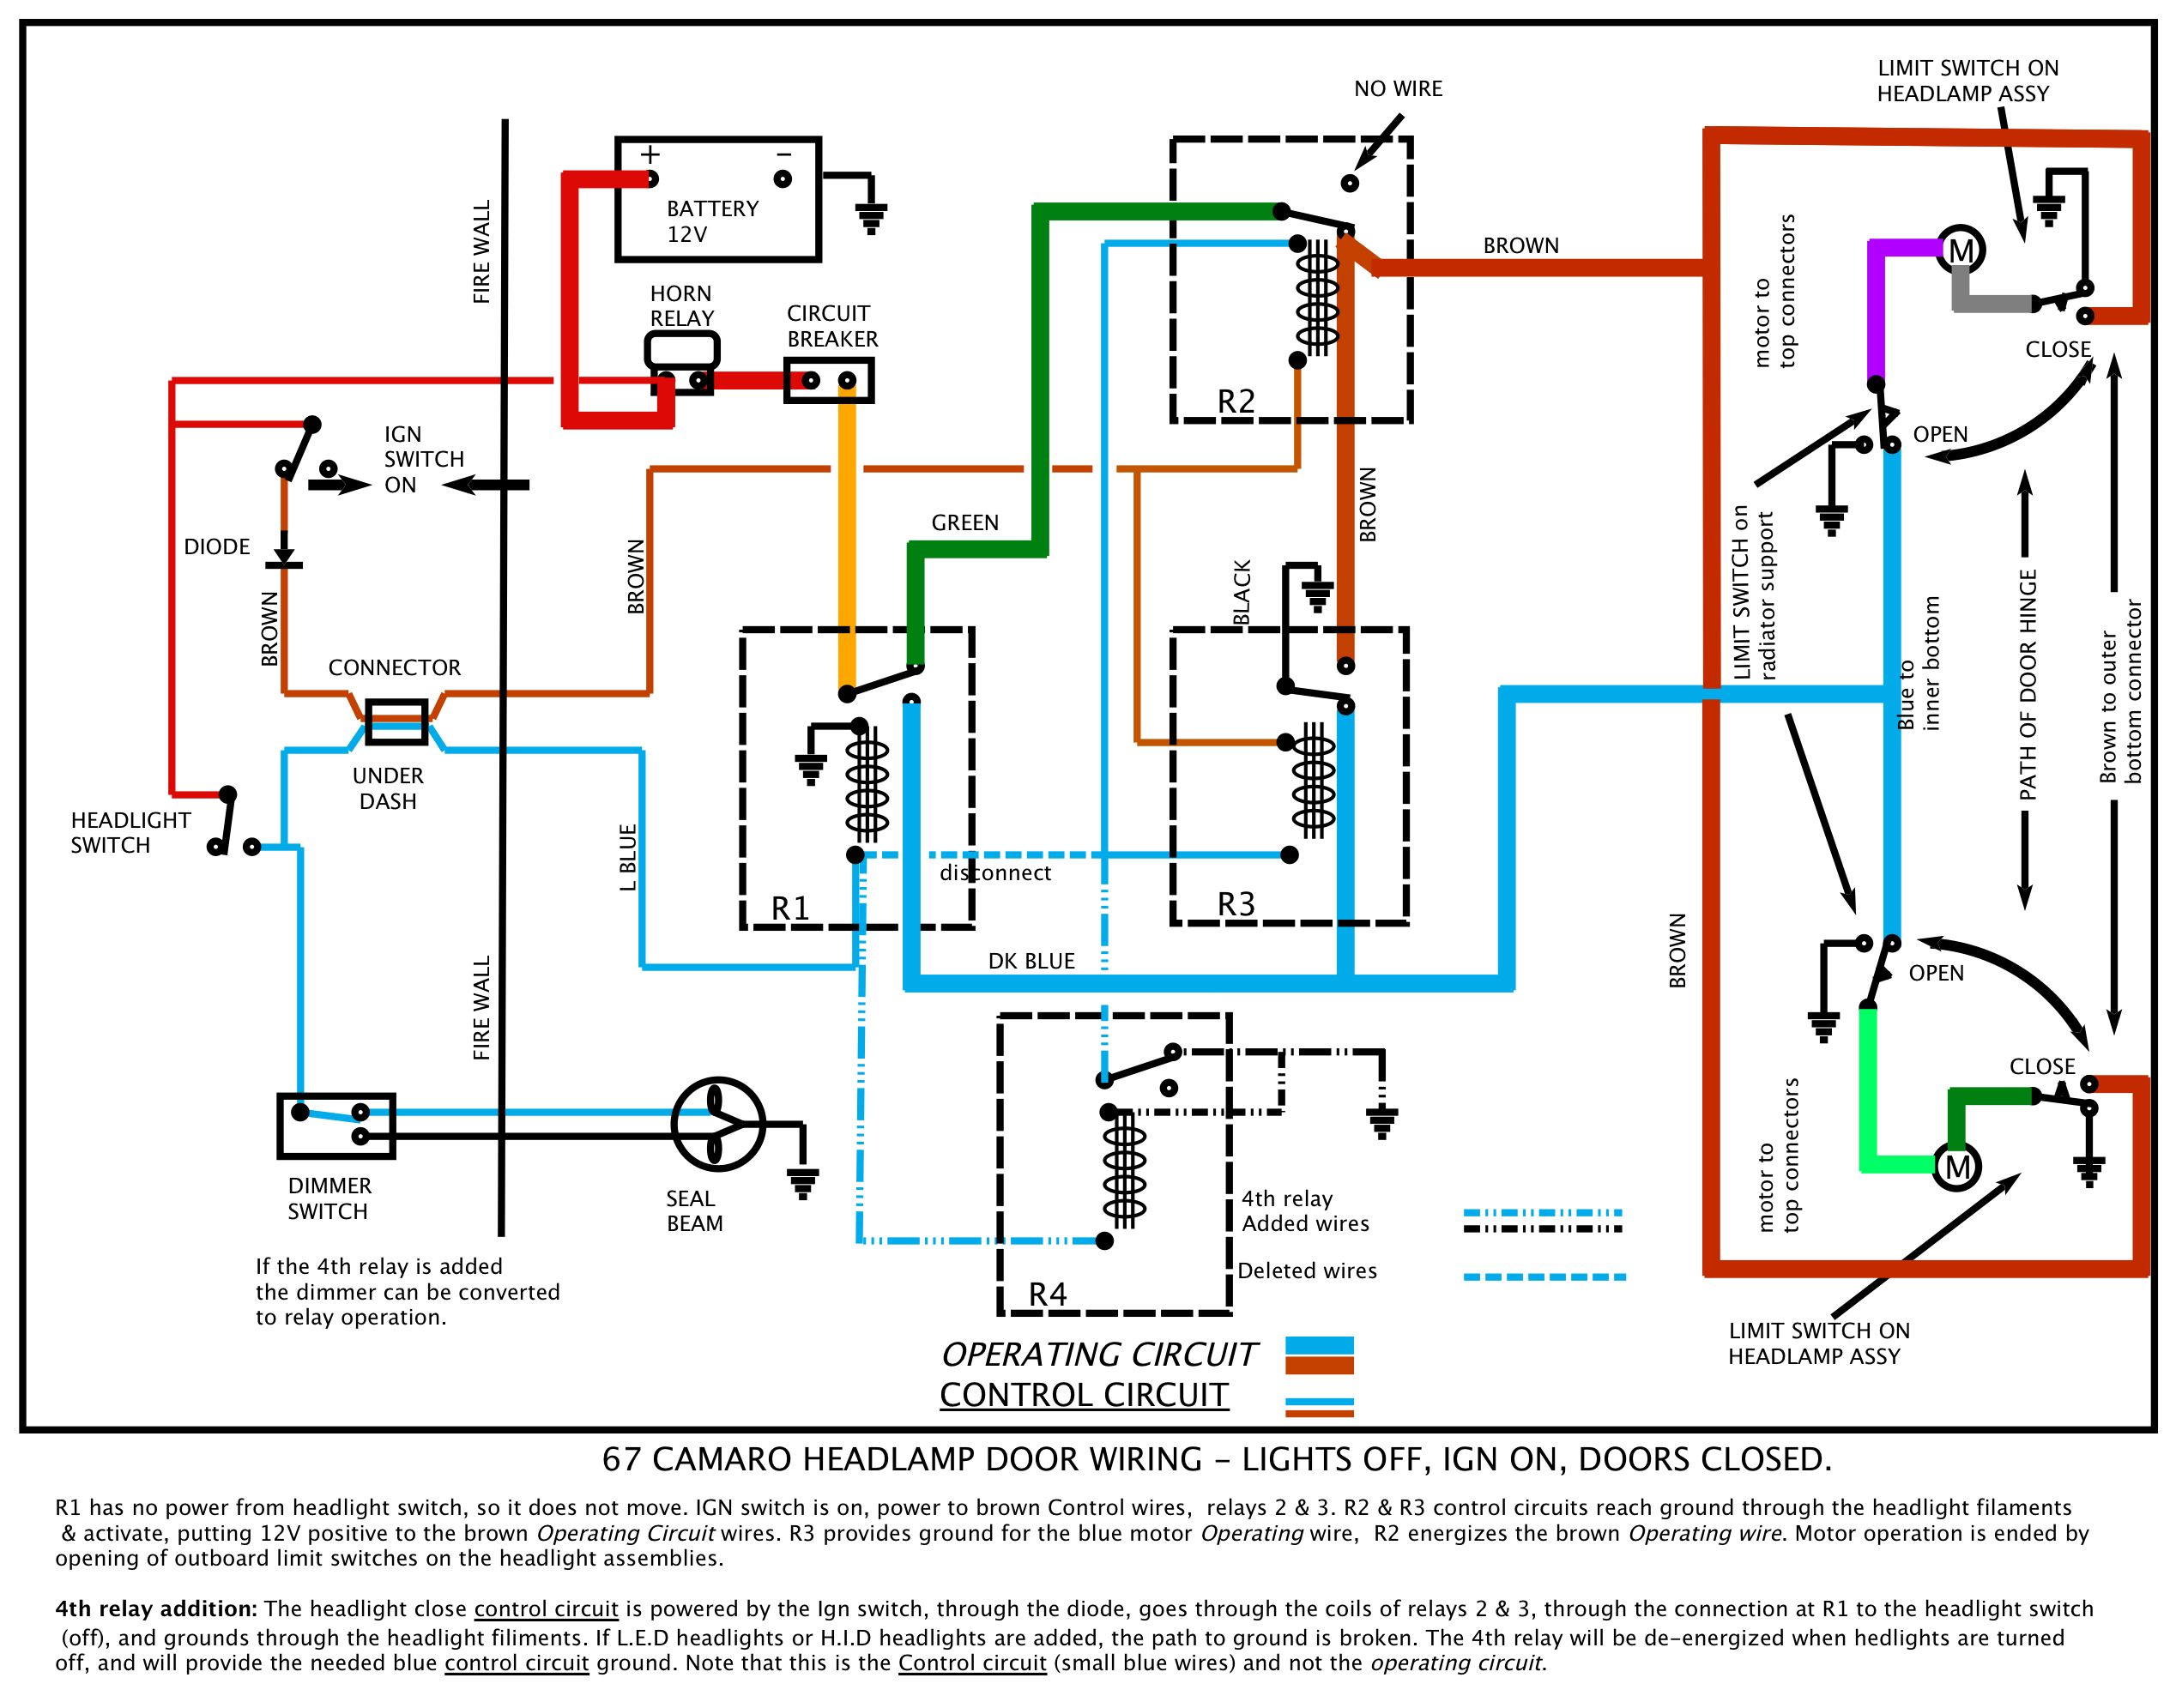 Wiring Diagram Hid Lights Off Largest Database Ballast Schematic 67 Rs Headlight Doors Rh Pozziracing Com Bulb